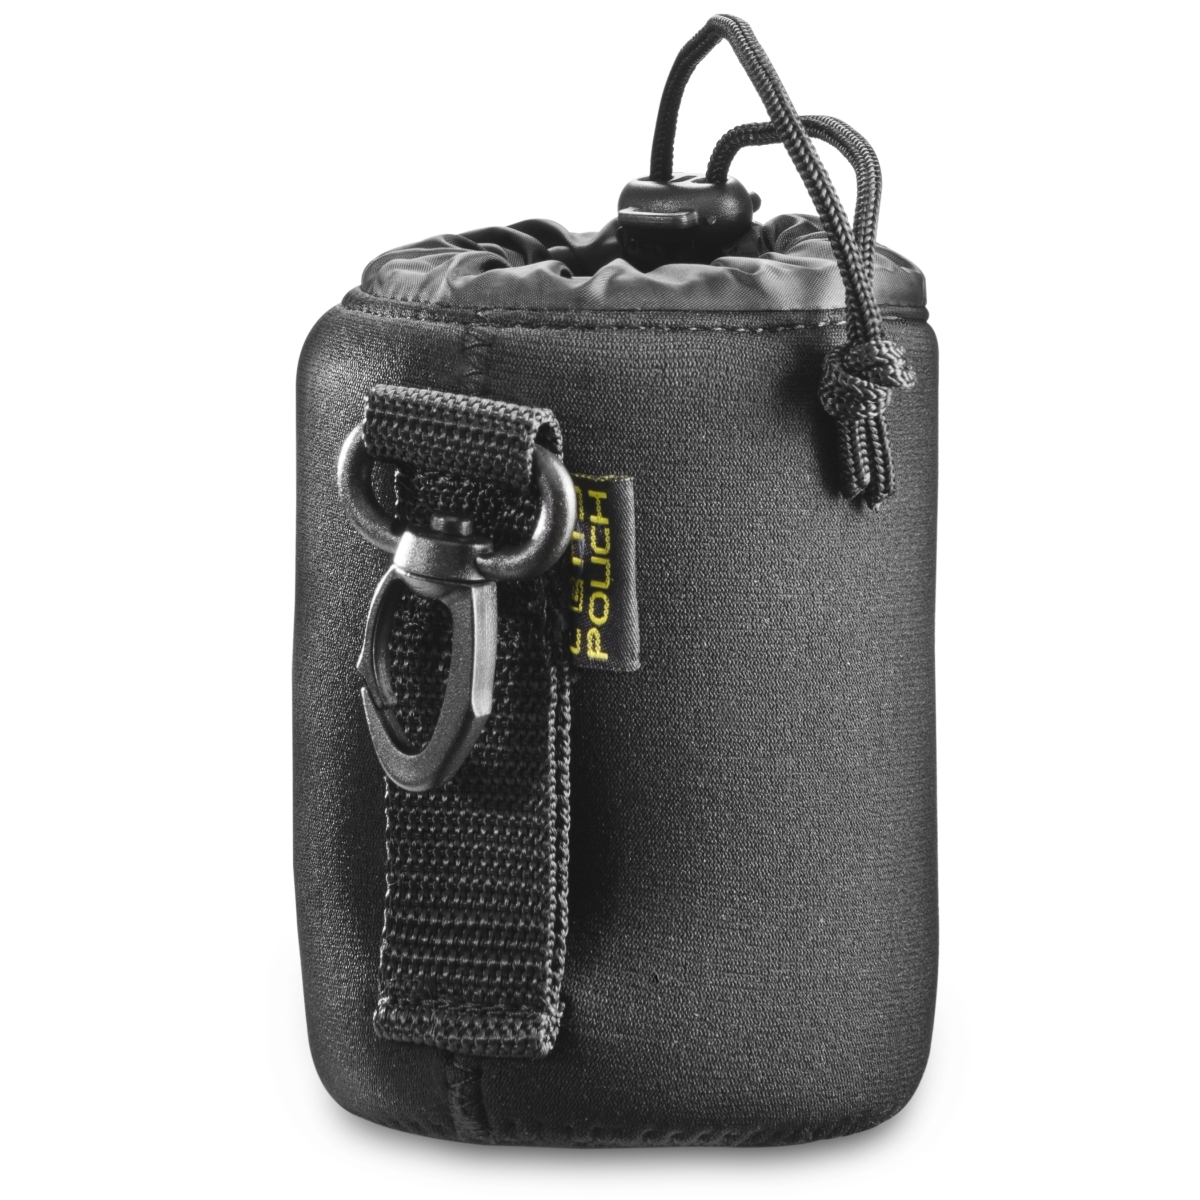 Walimex Lens Pouch NEO 300 S Model 2011